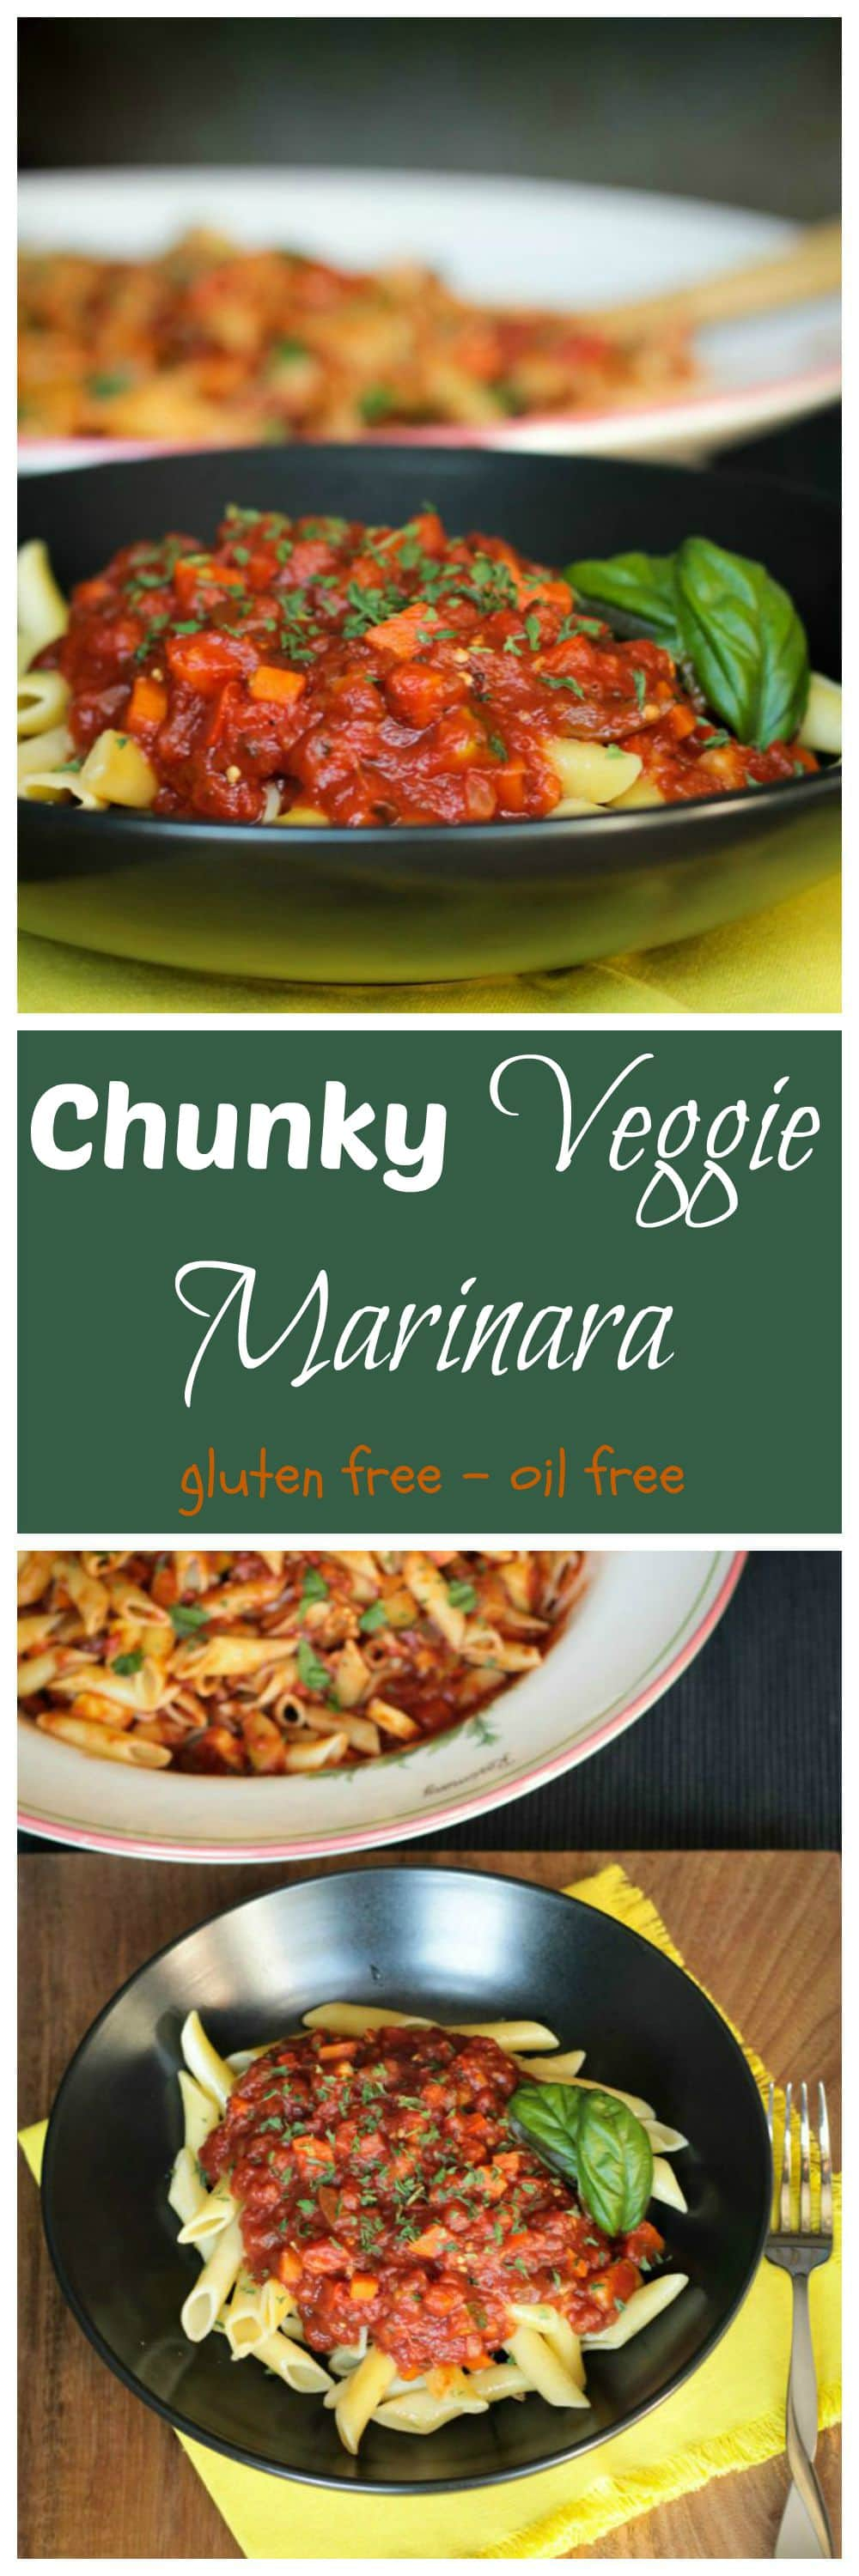 Chunky Veggie Marinara - an easy marinara sauce loaded with chopped summer vegetables. Kids and adults alike gobble this up! Serve it over noodles, rice, baked potato, etc. Yum!! #vegan #vegetarian #marinara #pastasauce #healthy #glutenfree #pasta #meatless #zucchini #eggplant #peppers